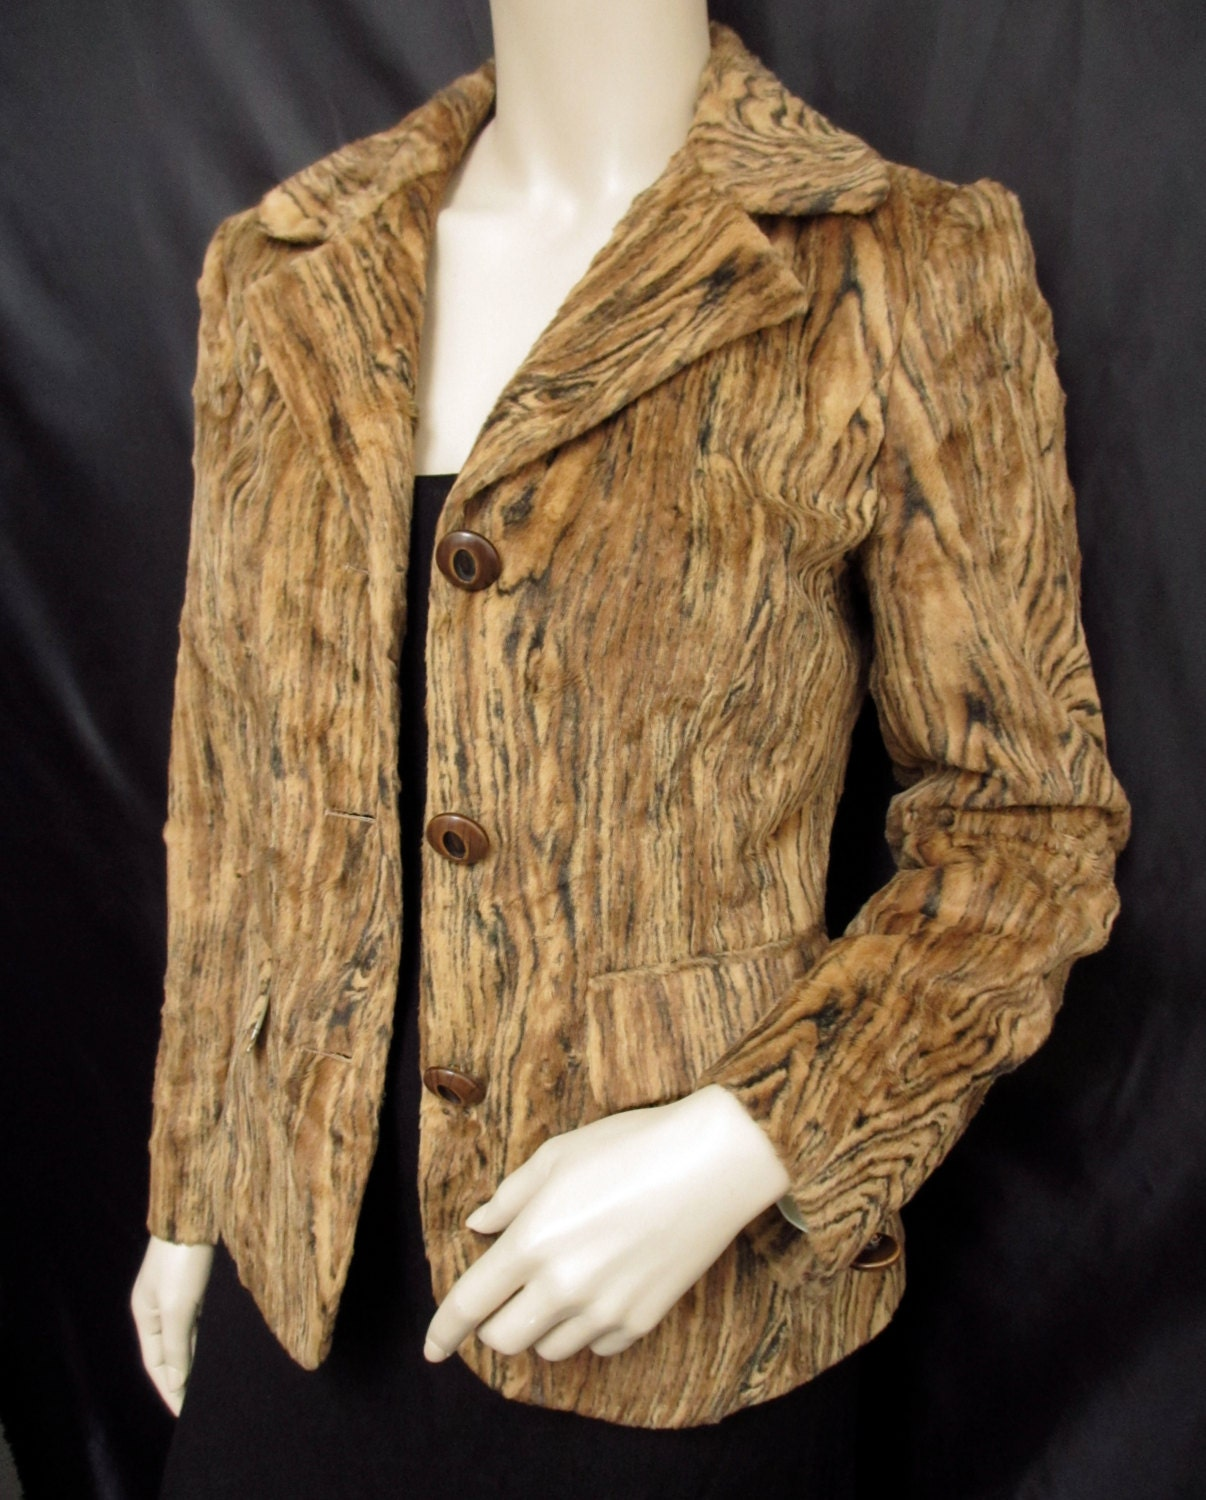 Vintage 1990s 90s Tan Brown Tiger Print Iceberg Jacket Made In Italy Size UK 8 small